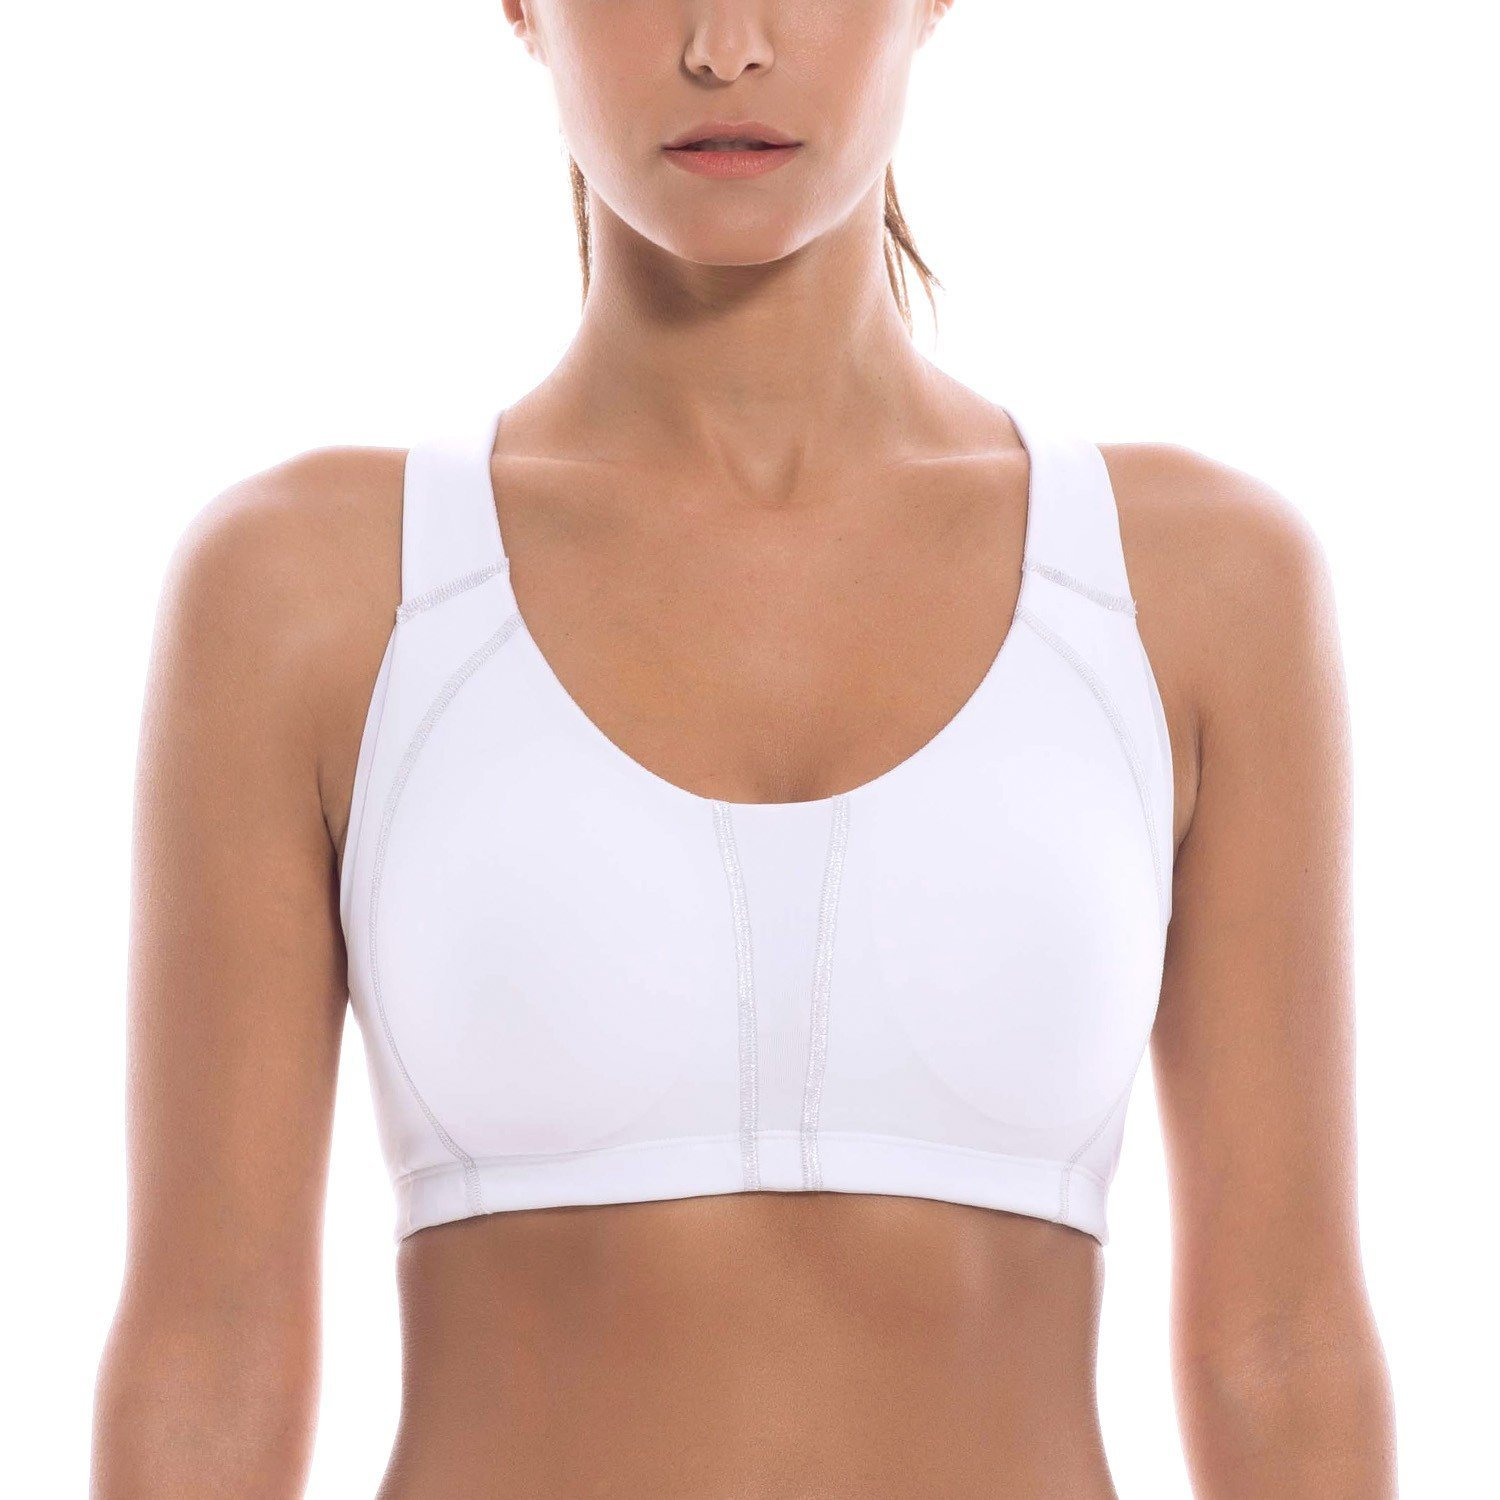 c0507e7f059c8 Get Quotations · La Isla Women s High Impact Wire Free Full Supportive  Racerback Sports Bra